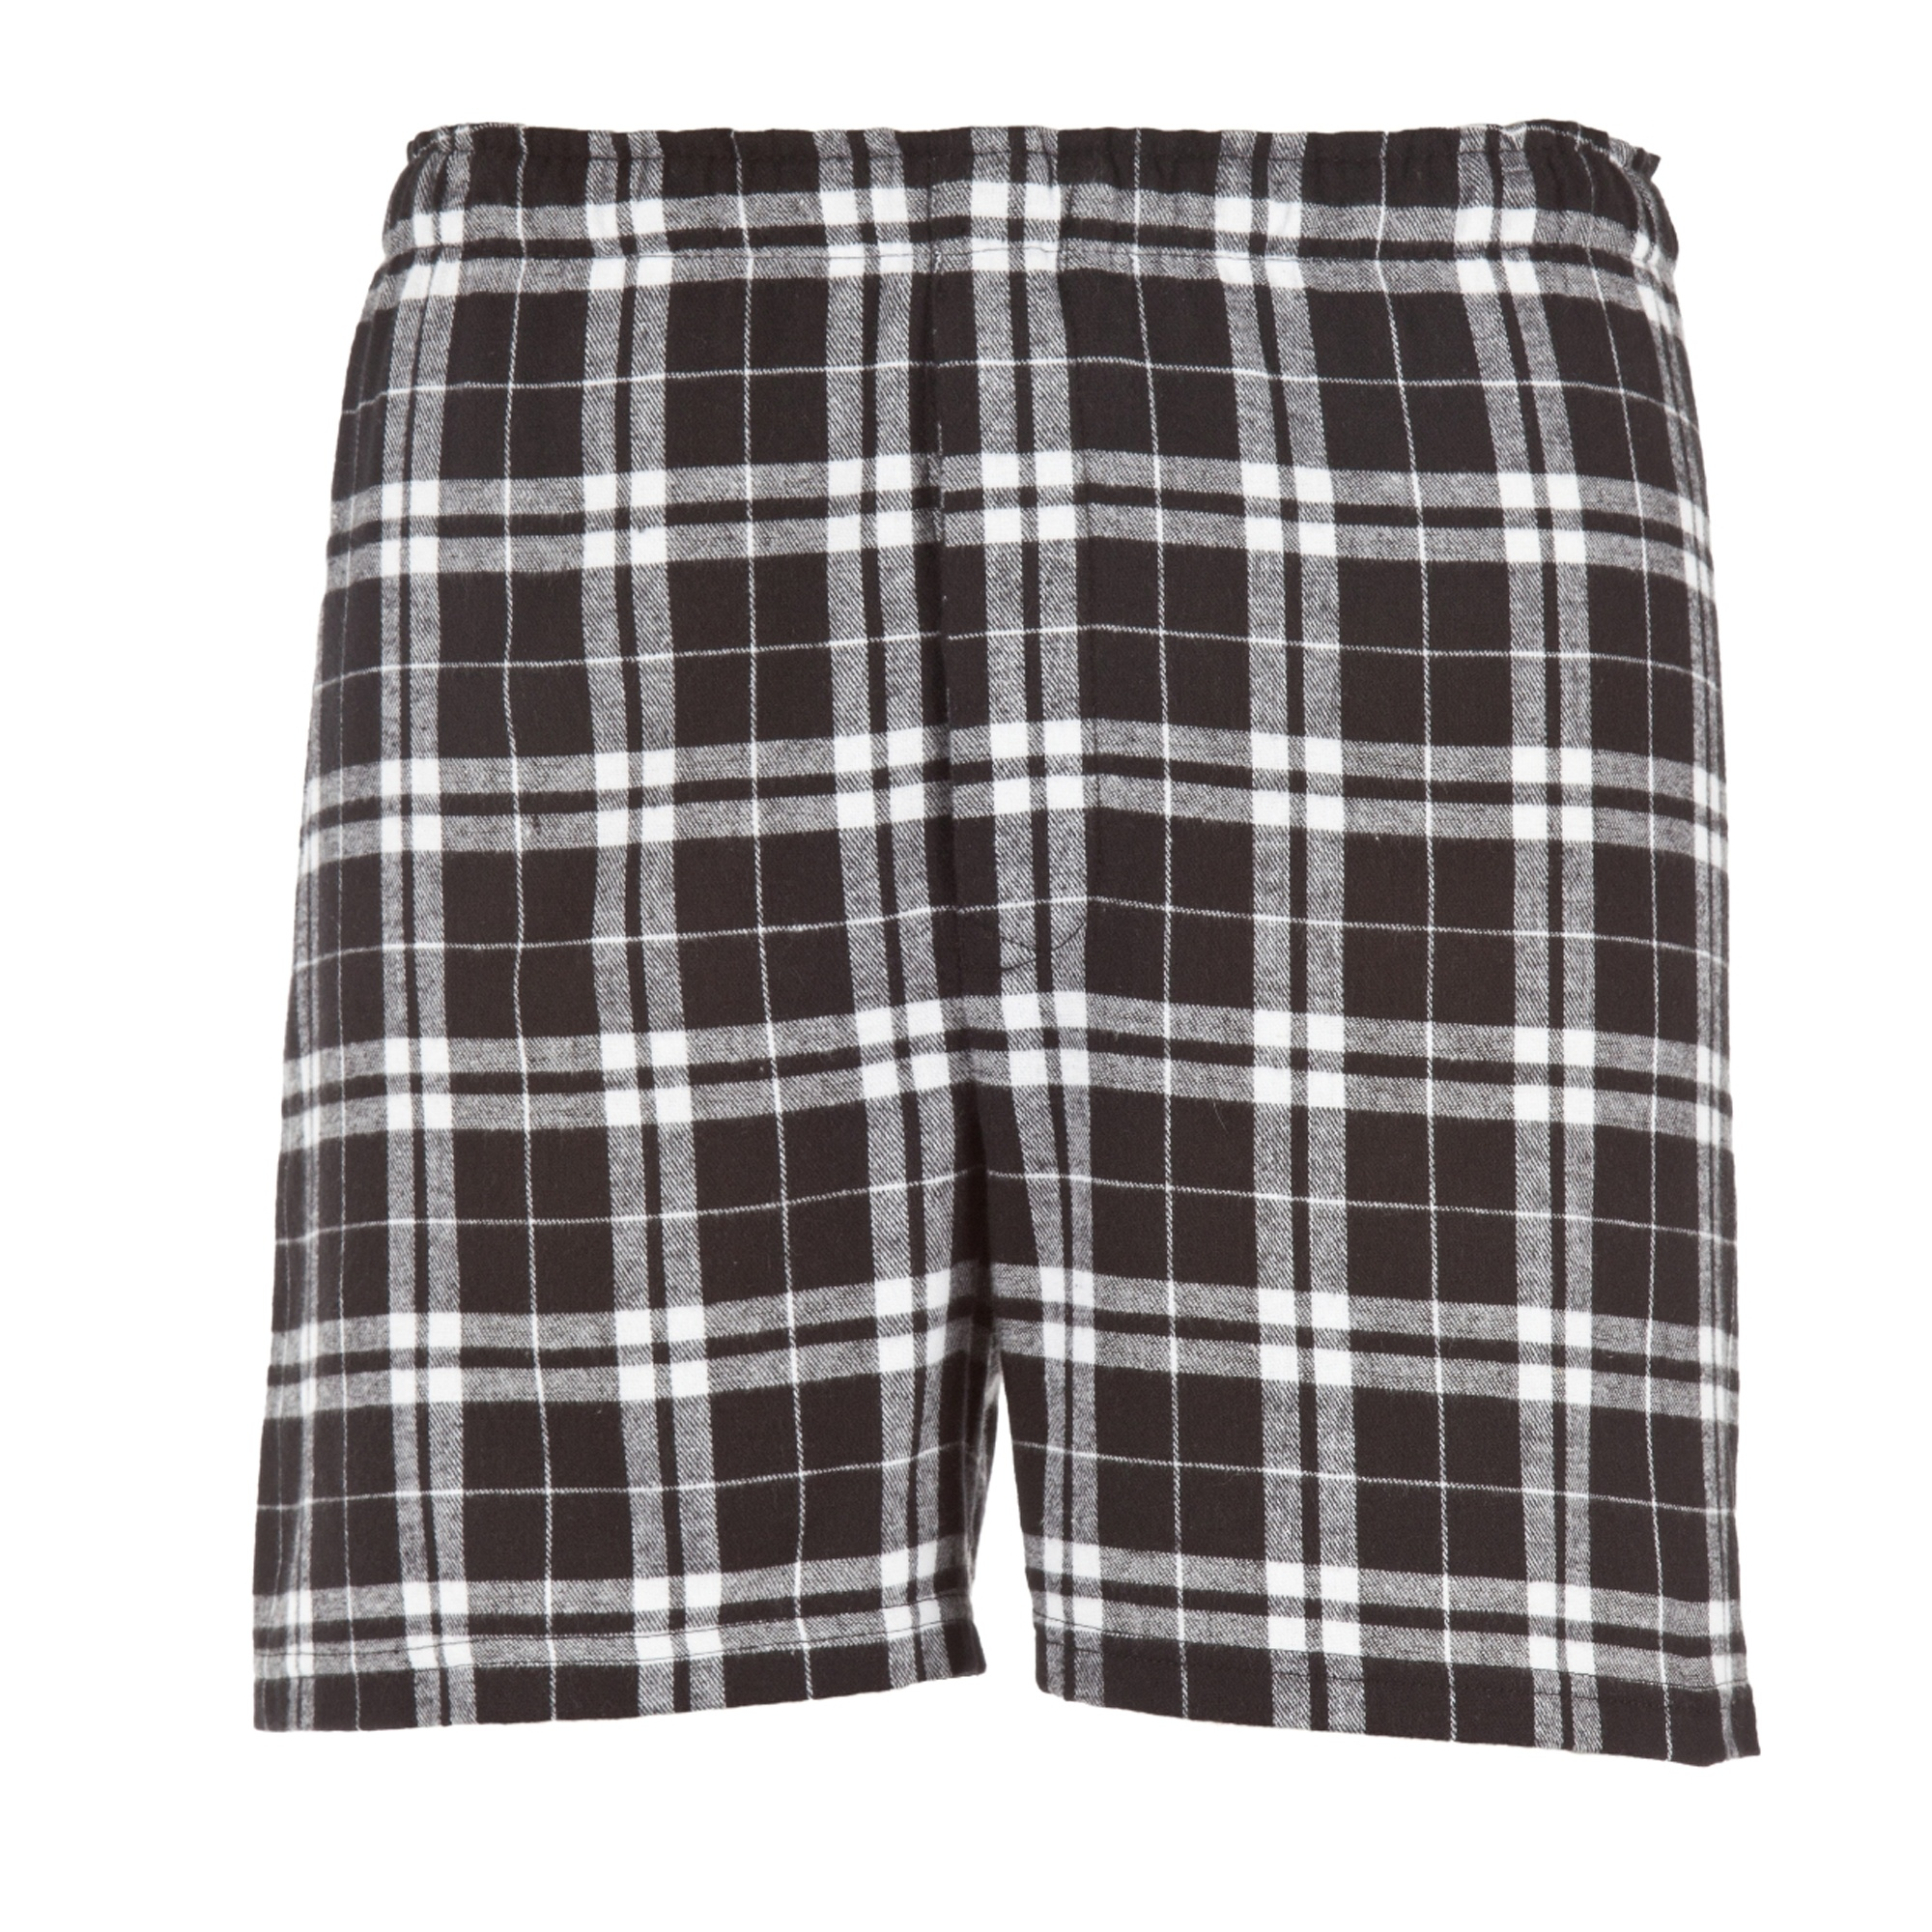 Underwear Boxers & Briefs Undershirts Socks View All; Pants Work Pants Casual Pants Jeans Shorts View All; Outerwear Jackets & Coats Vests Pants & Overalls Compare Men's Flapjack Flannel Shirt Jac QuickView + more; Jade Plaid. Men's Free Swingin' Trim Fit Flannel Shirt $ $ - .